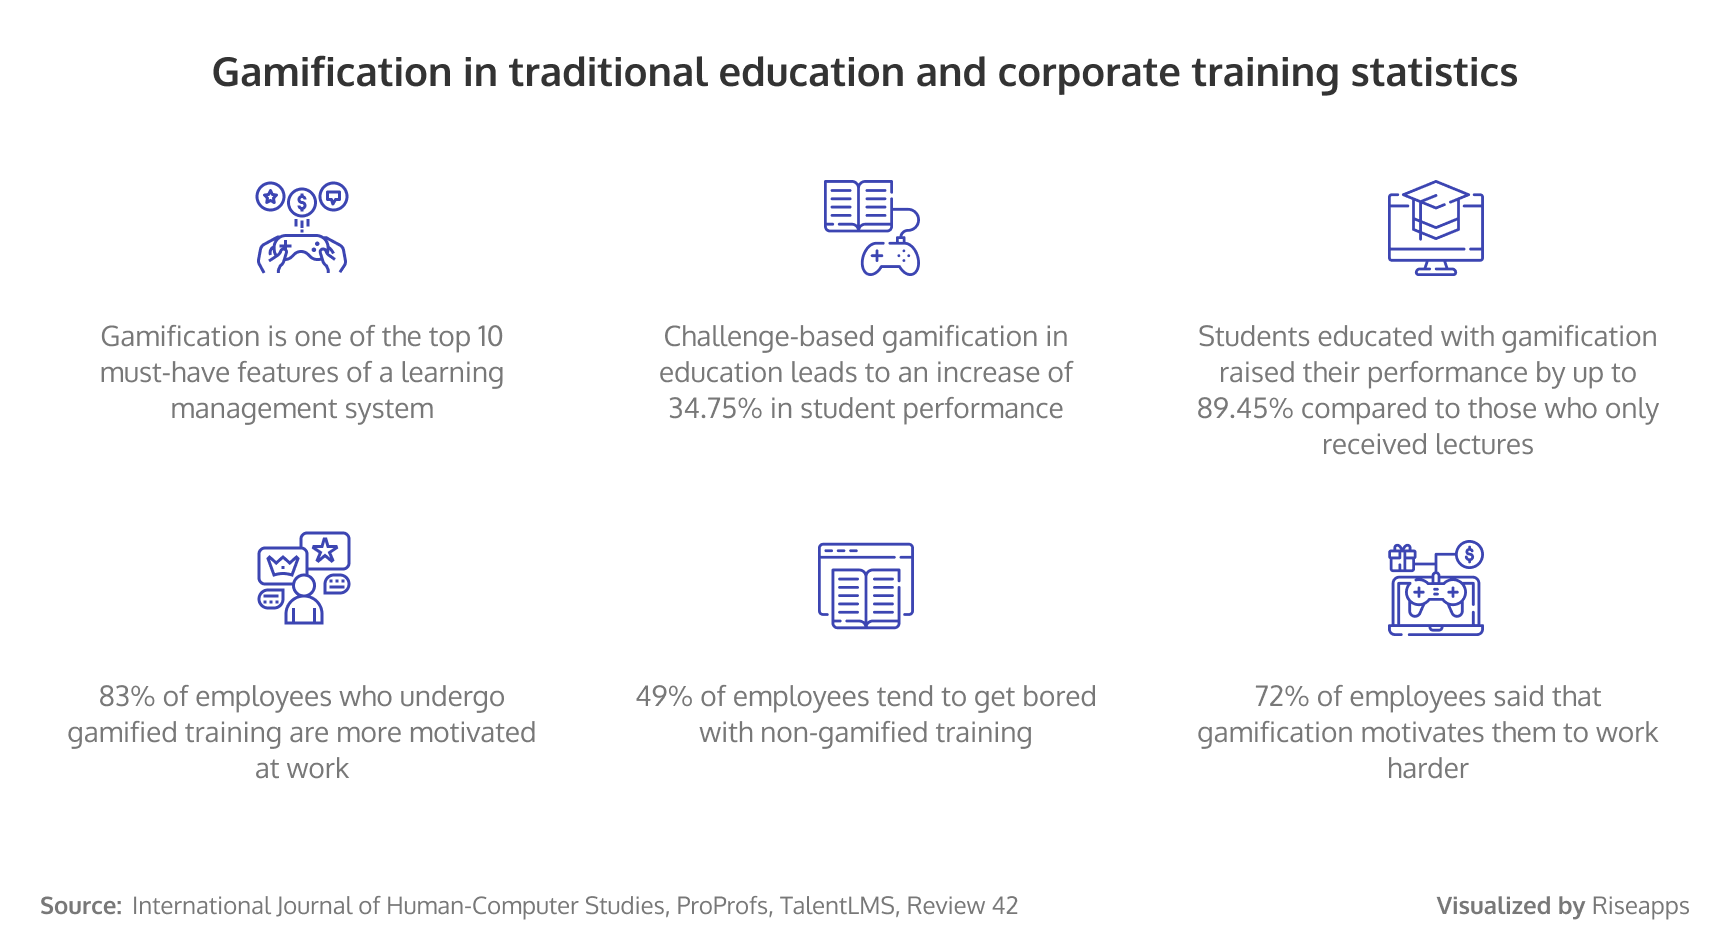 Gamification in traditional education and corporate training statistics